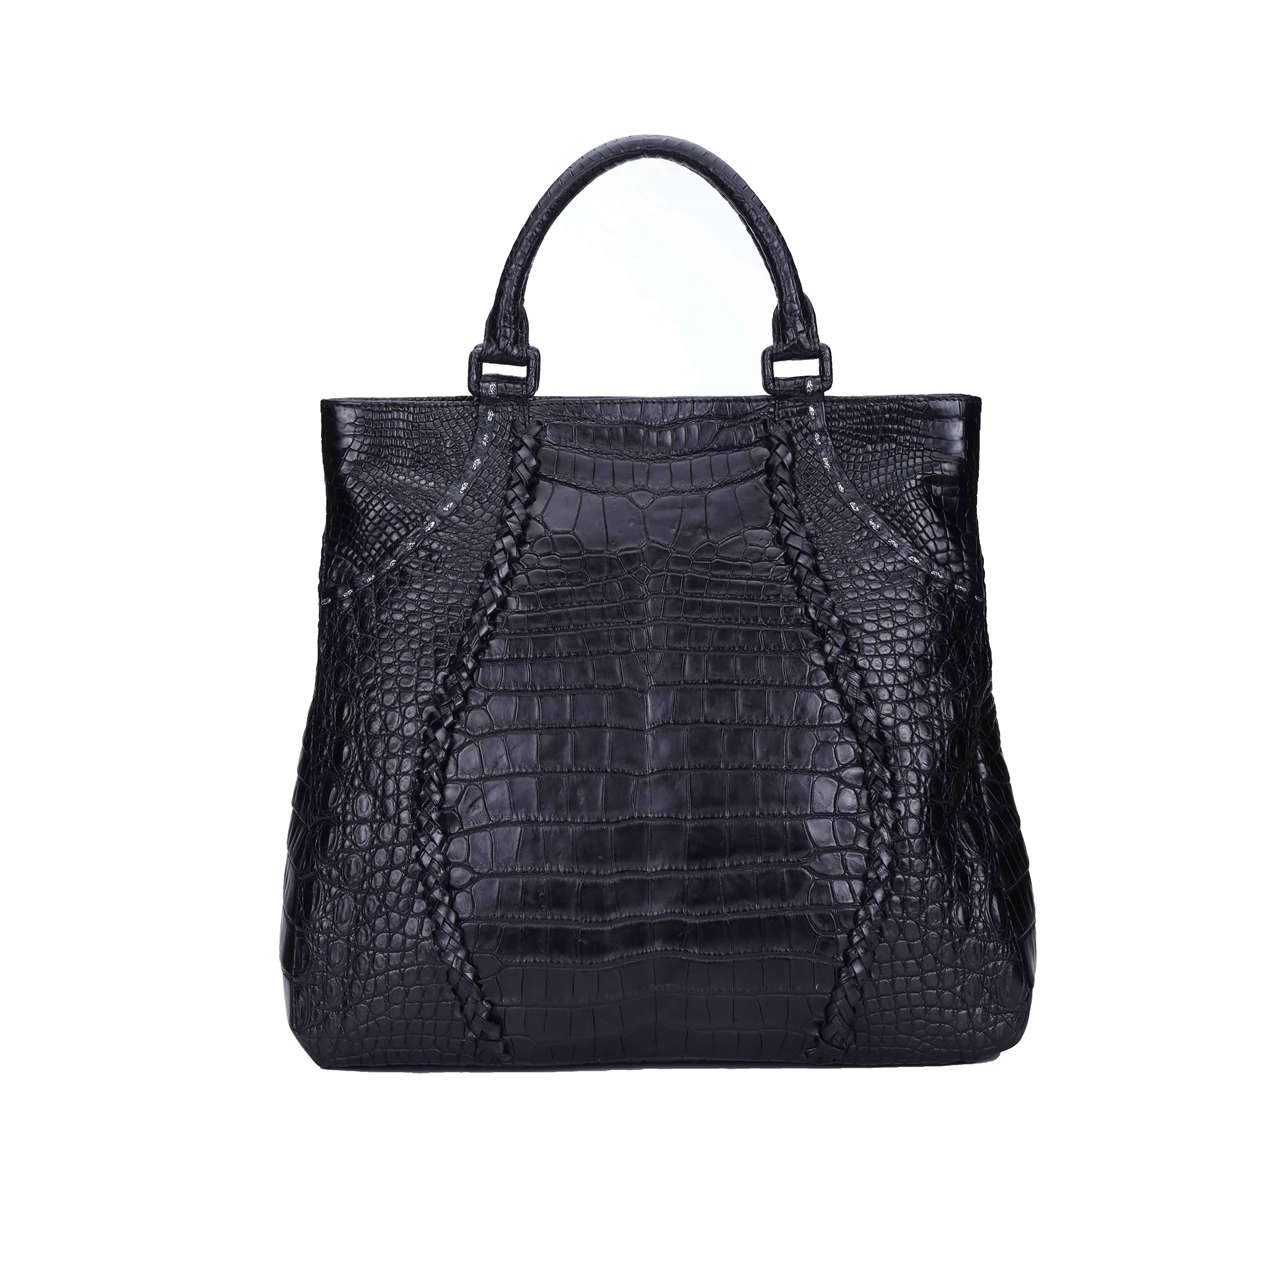 GF bags leather cover fashion handbags make for shopping-2